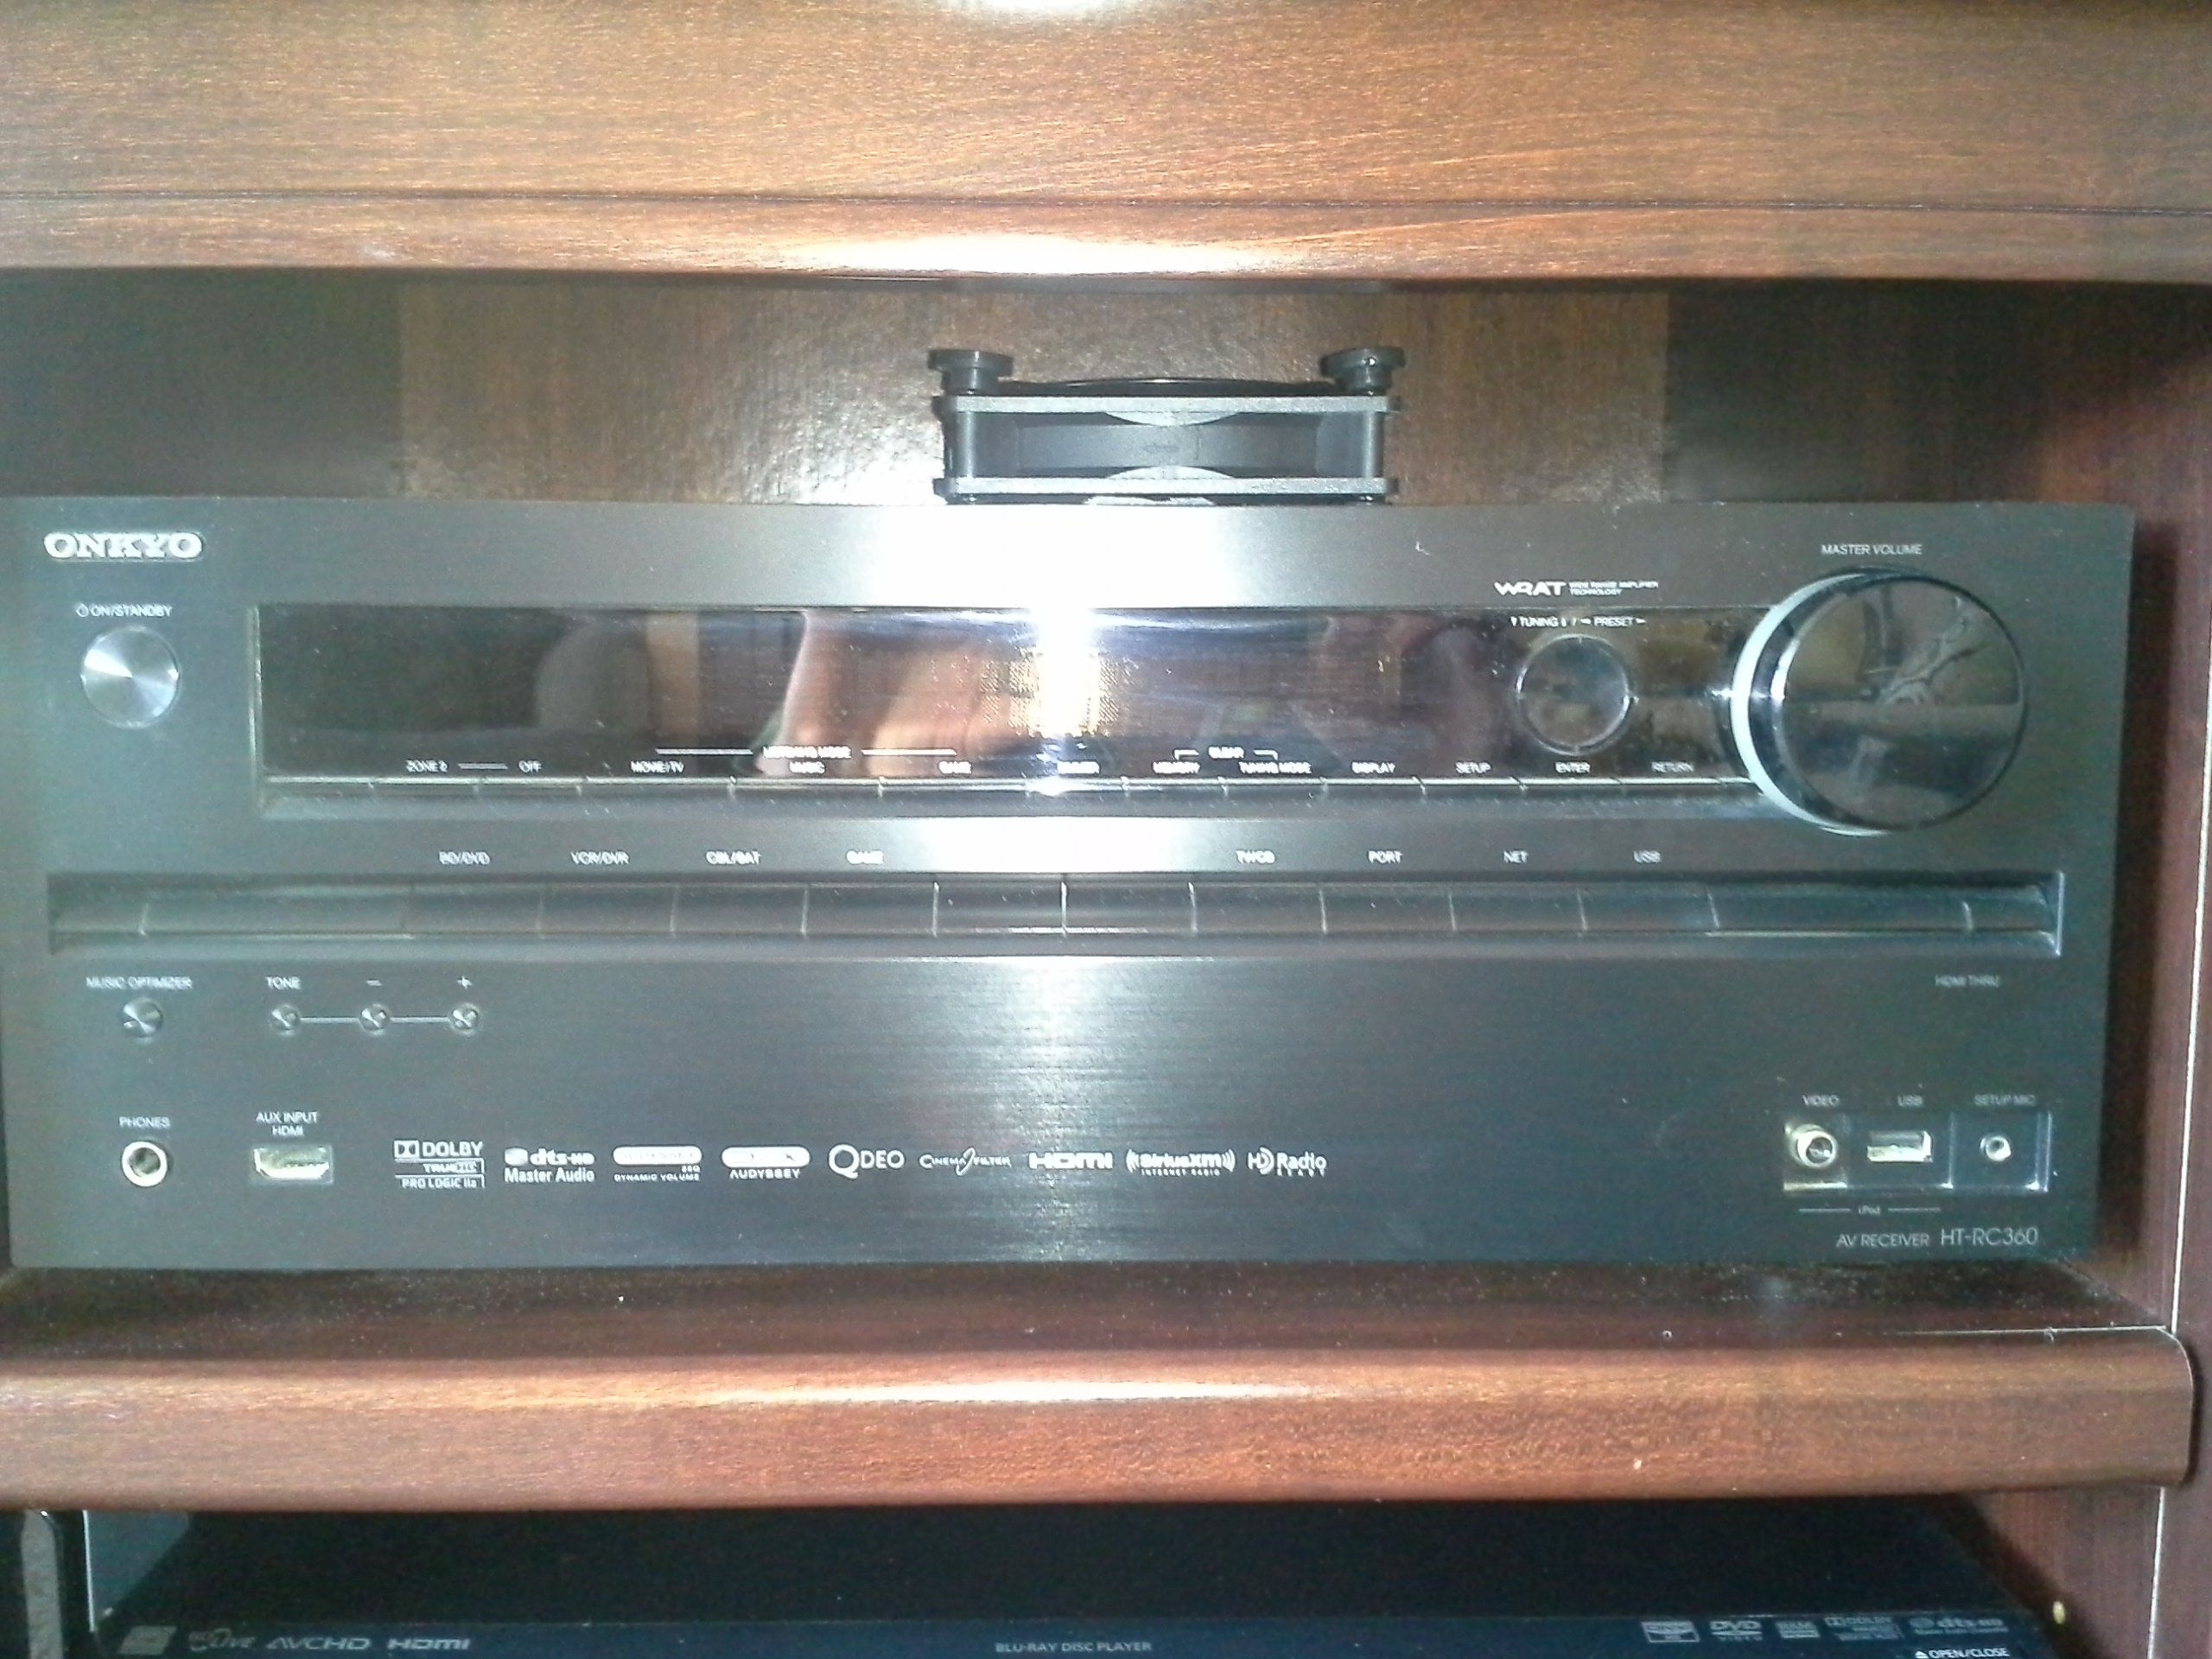 Owner's thread for Onkyo HT-RC360 and 370 - Page 25 - AVS